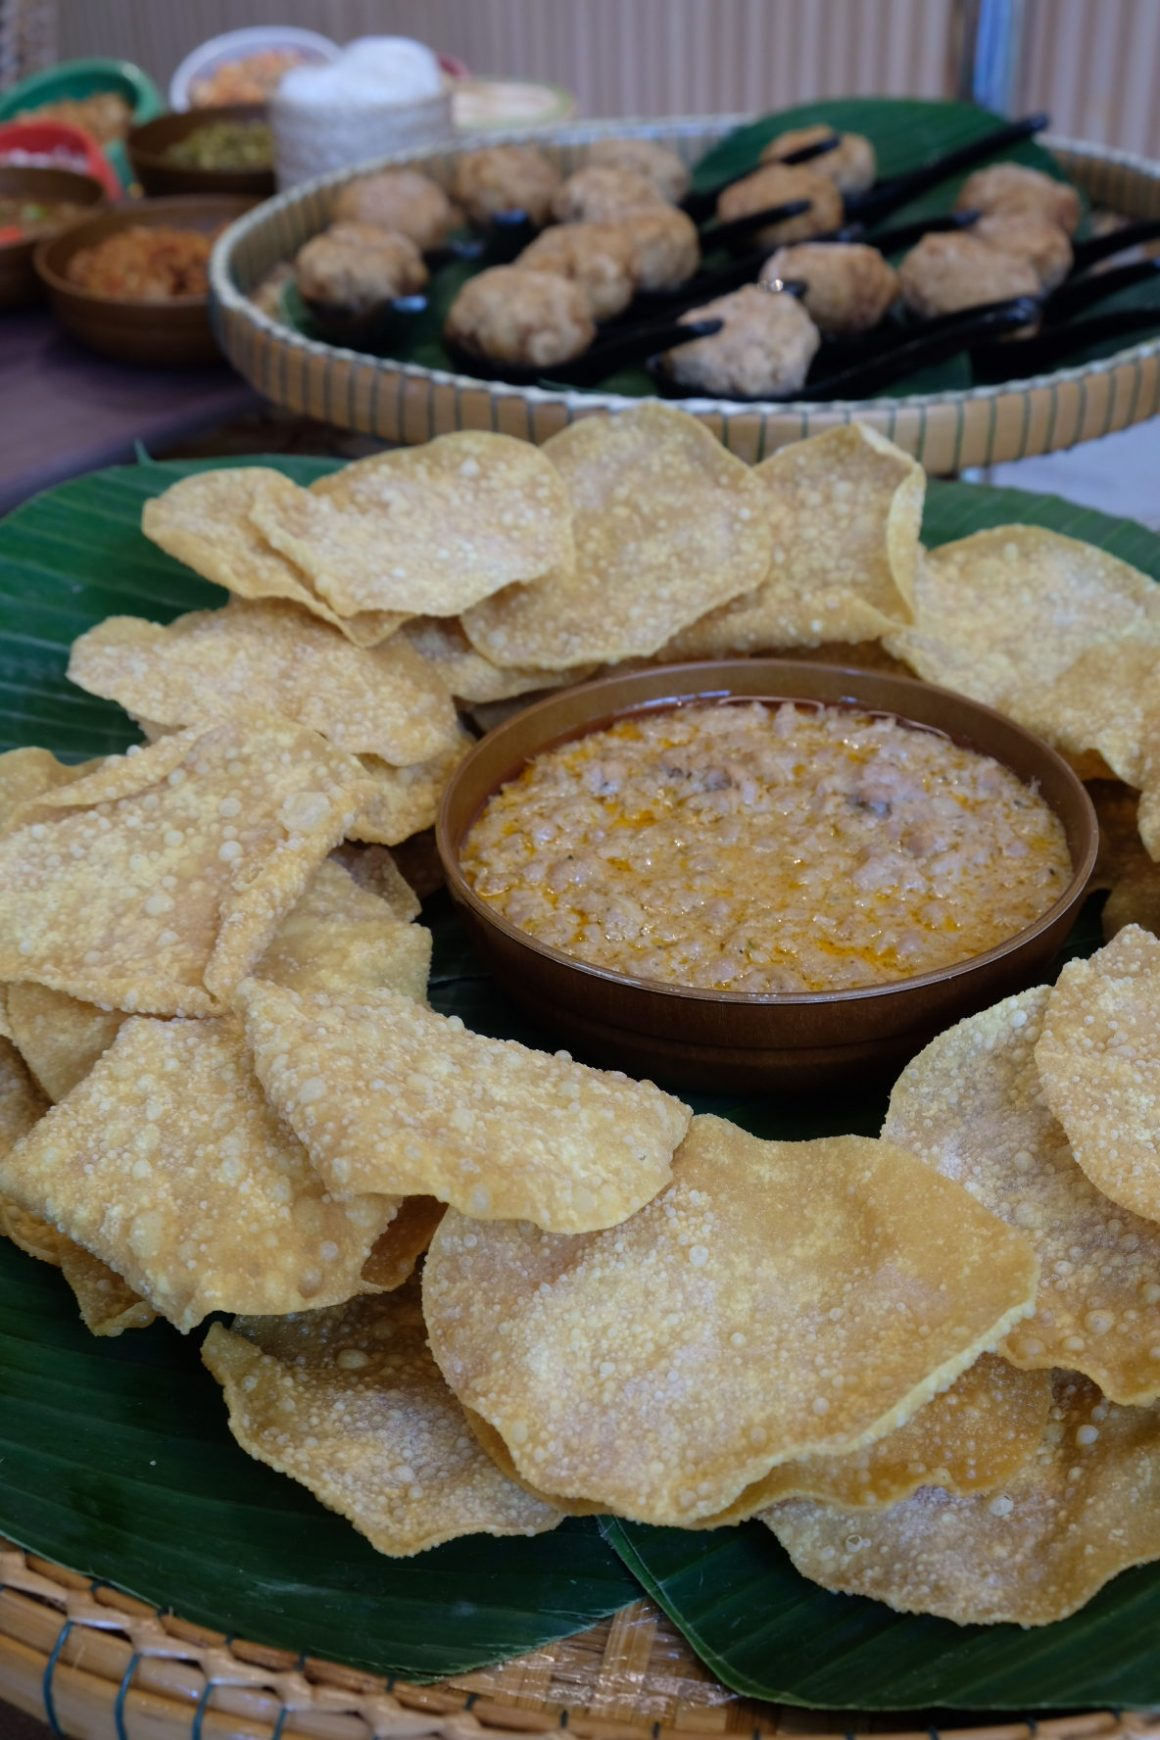 The Great Baan Ying Brunch On Weekends - Kiew Krop Na Tung (Crispy Wanton Skin with POrk and Shrimp Dip)